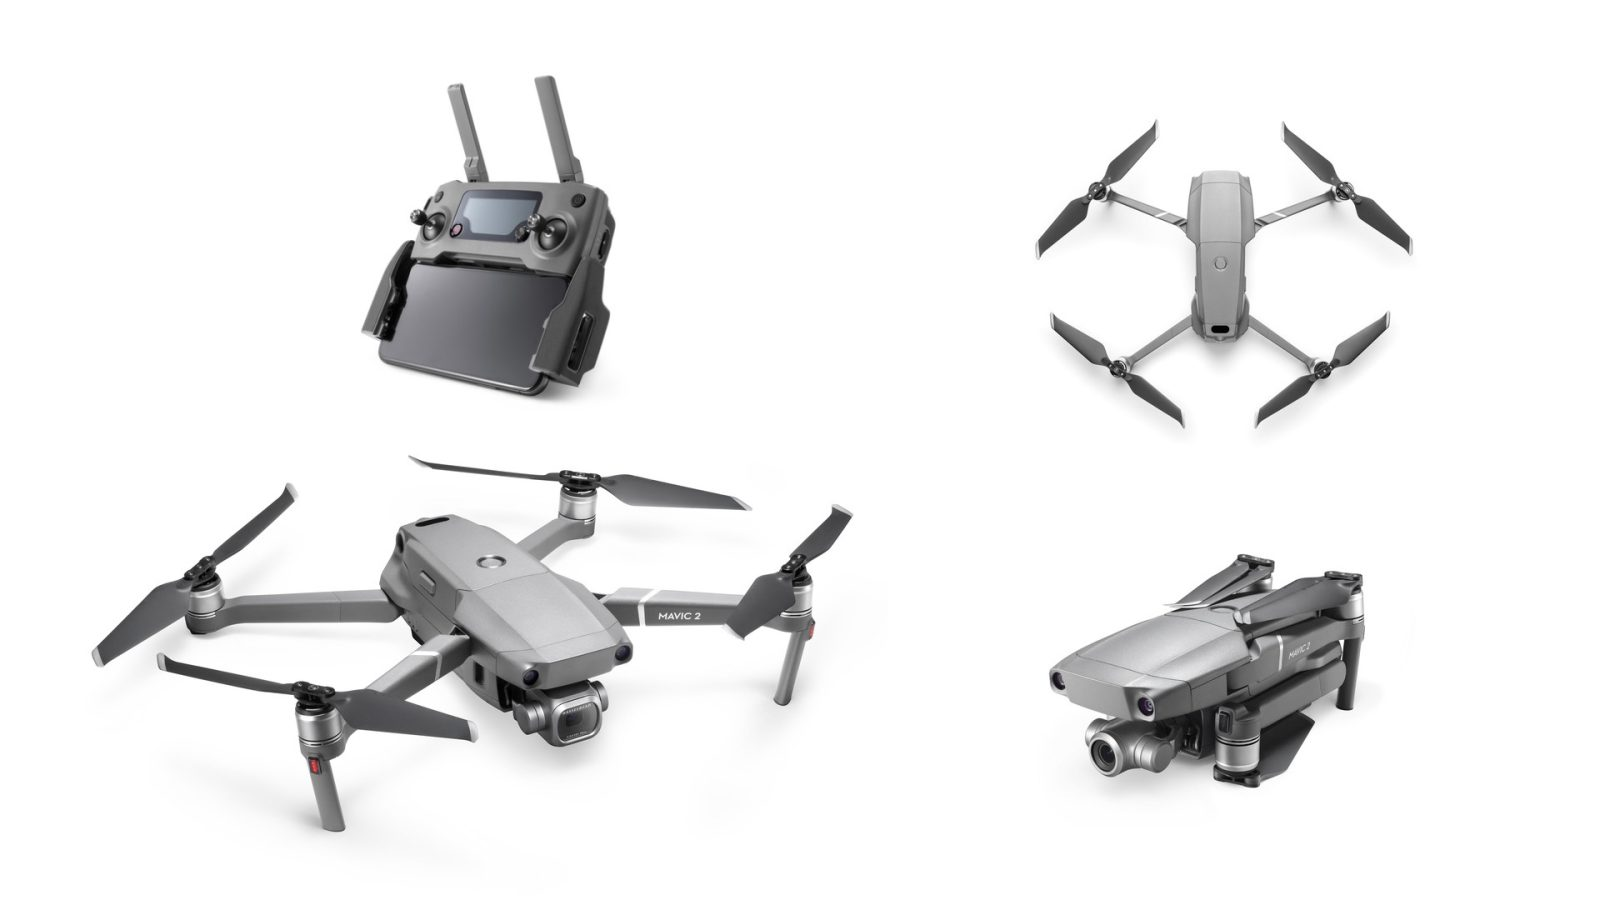 Mavic DJI 2 Zoom/Pro drones unveiled: Hasselblad cam/2x optical